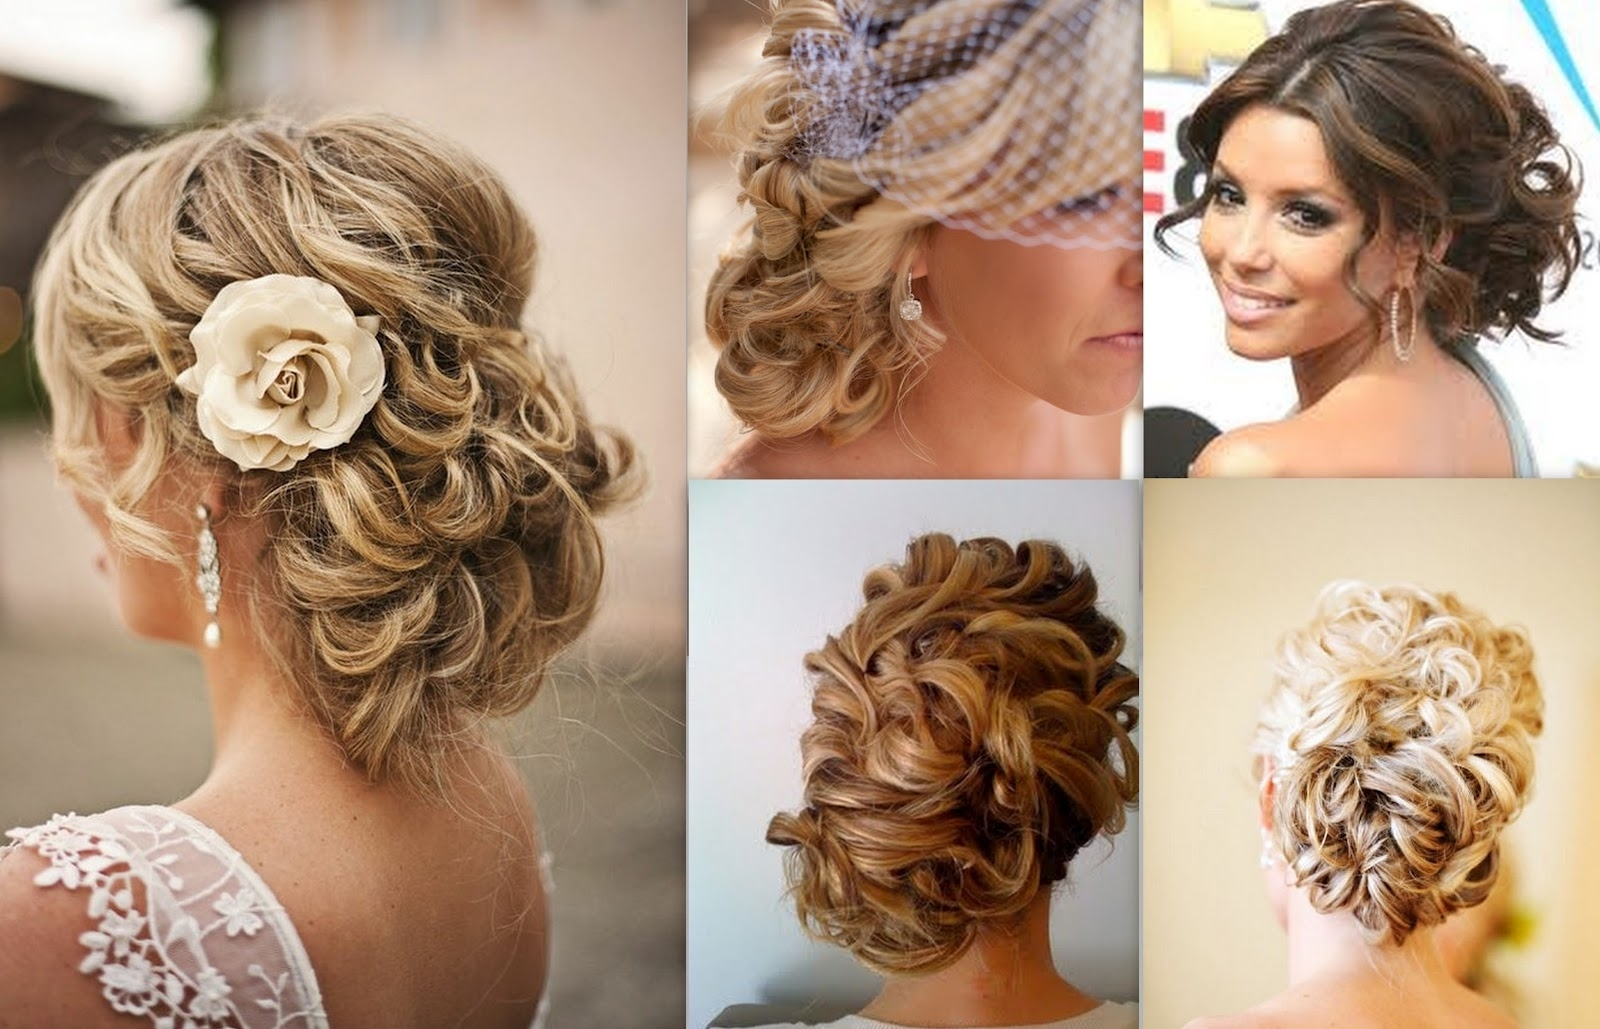 Well Known Wedding Hairstyles With Hair Extensions Regarding Hair Extensions For Your Dallas Wedding Day (Gallery 5 of 15)